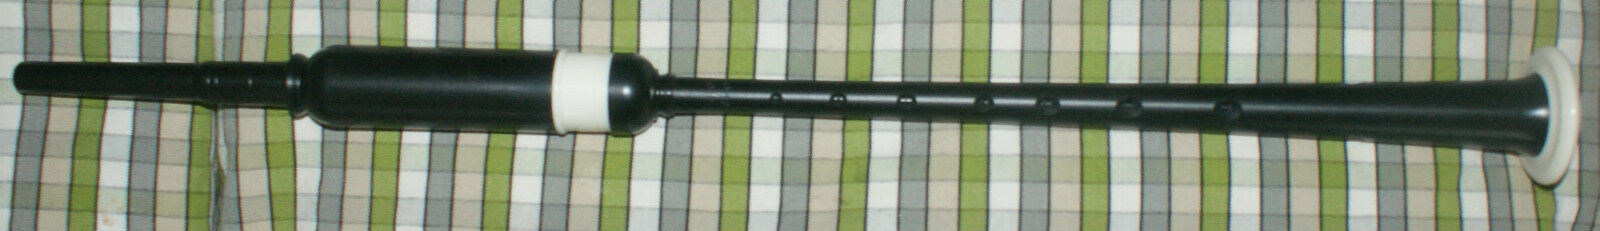 McCallum Pipe Chanter Größe Plastic Practice Chanter Highland Bagpipe pipes